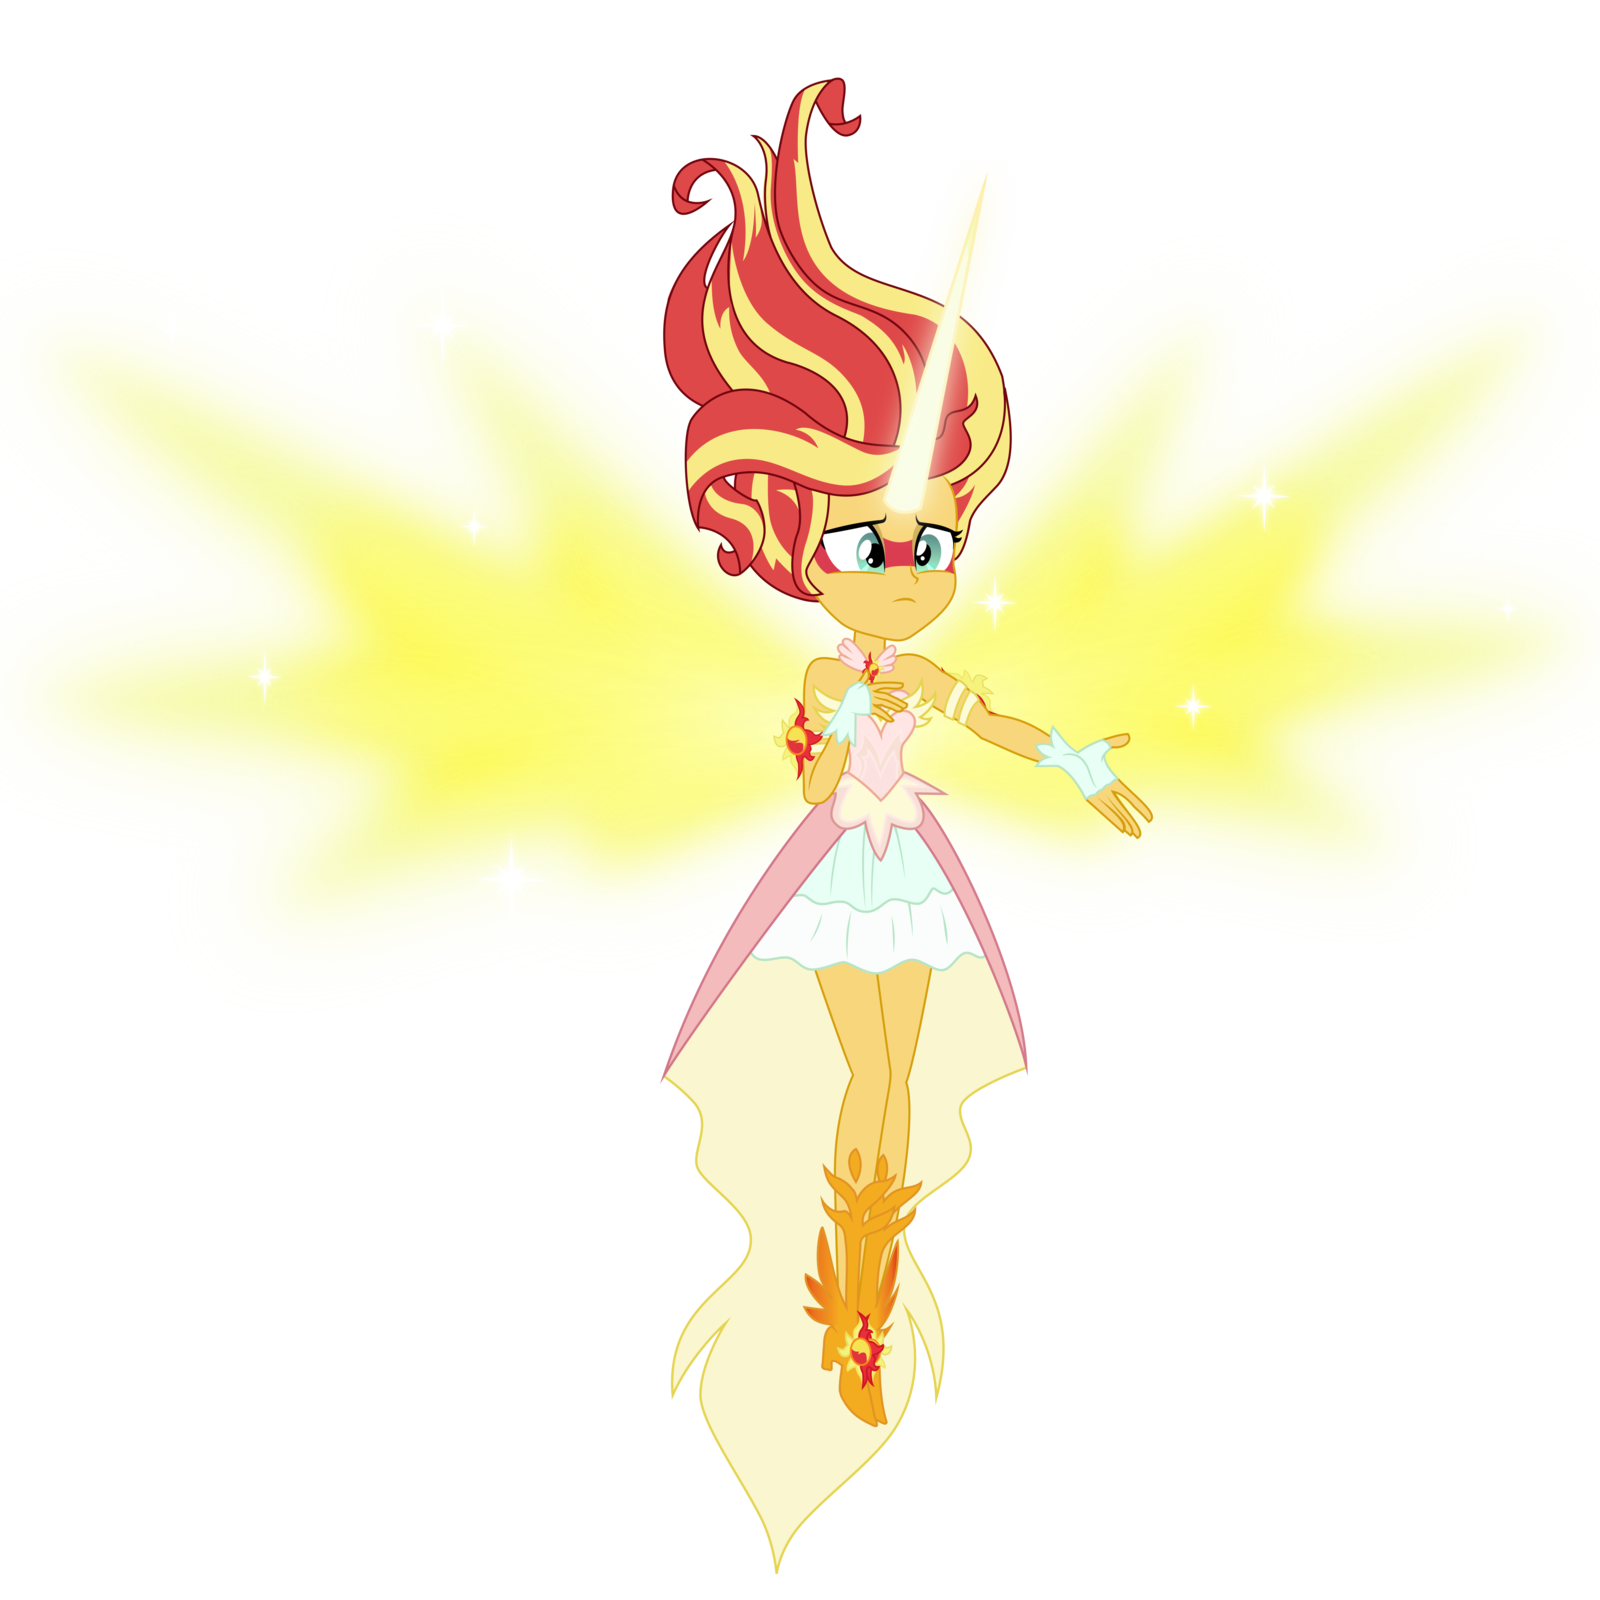 Daydreaming clipart dream school. Image daydream shimmer by